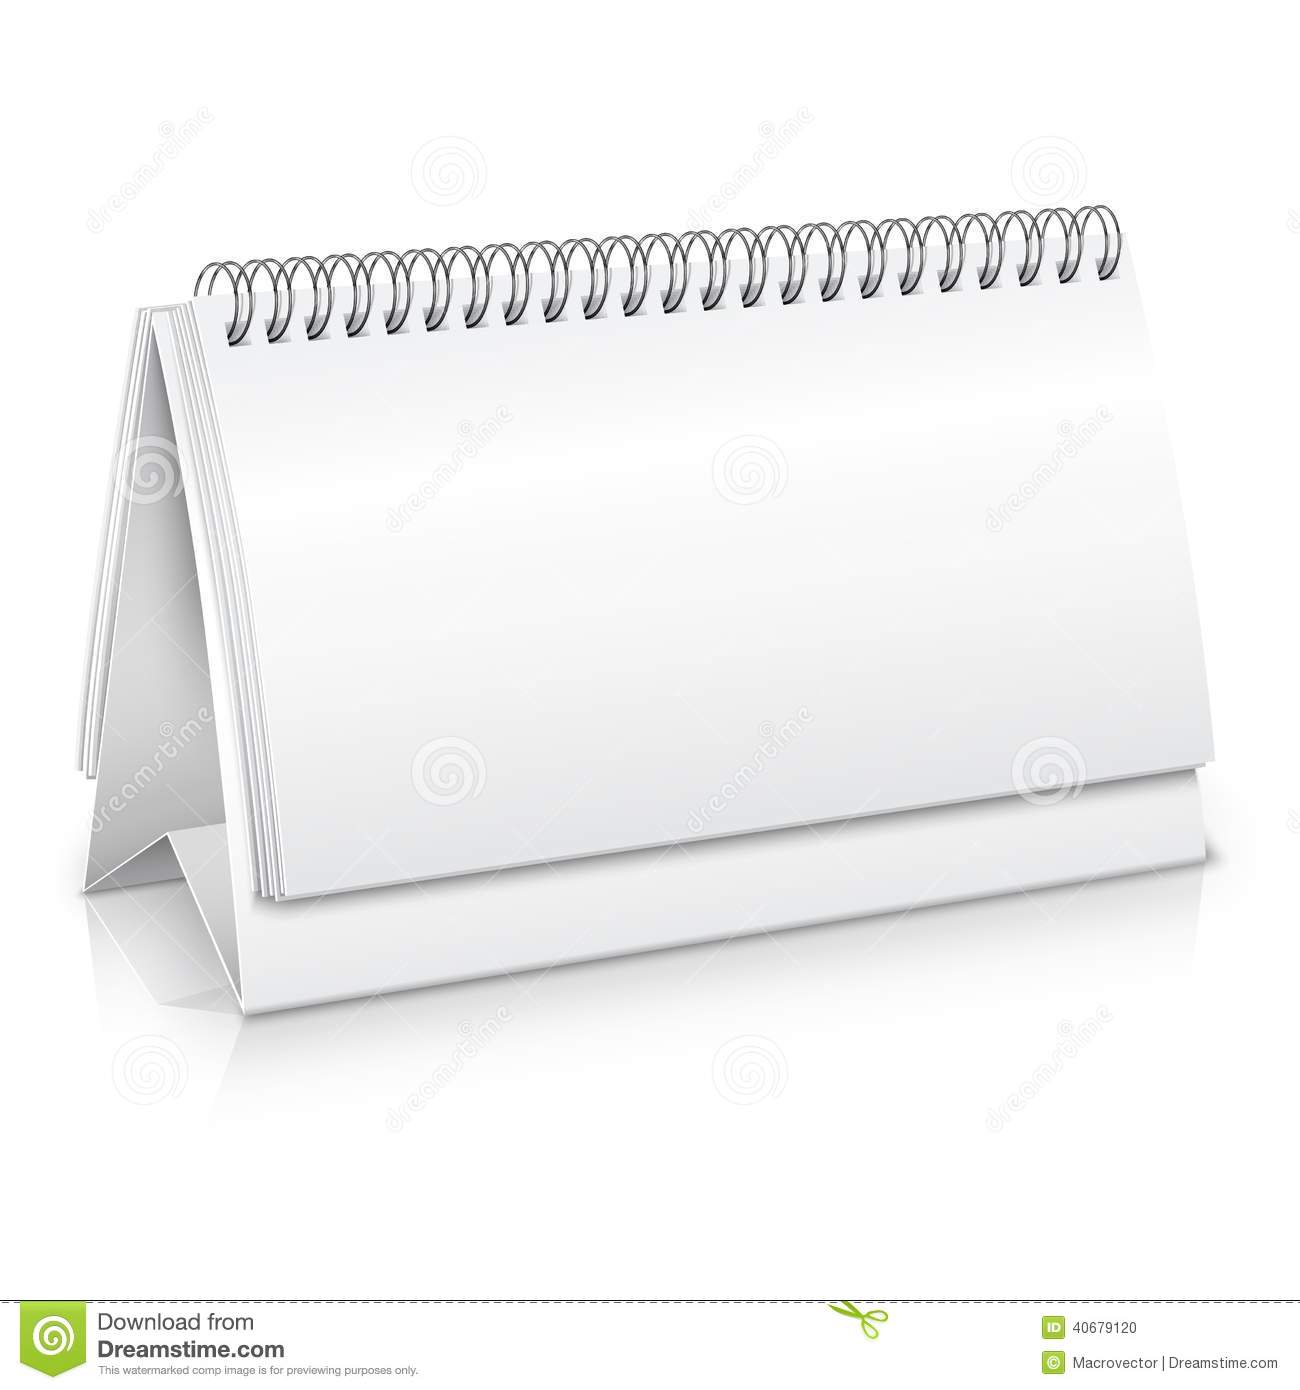 Blank Vector Calendar Template : Desk calendar mockup stock vector illustration of